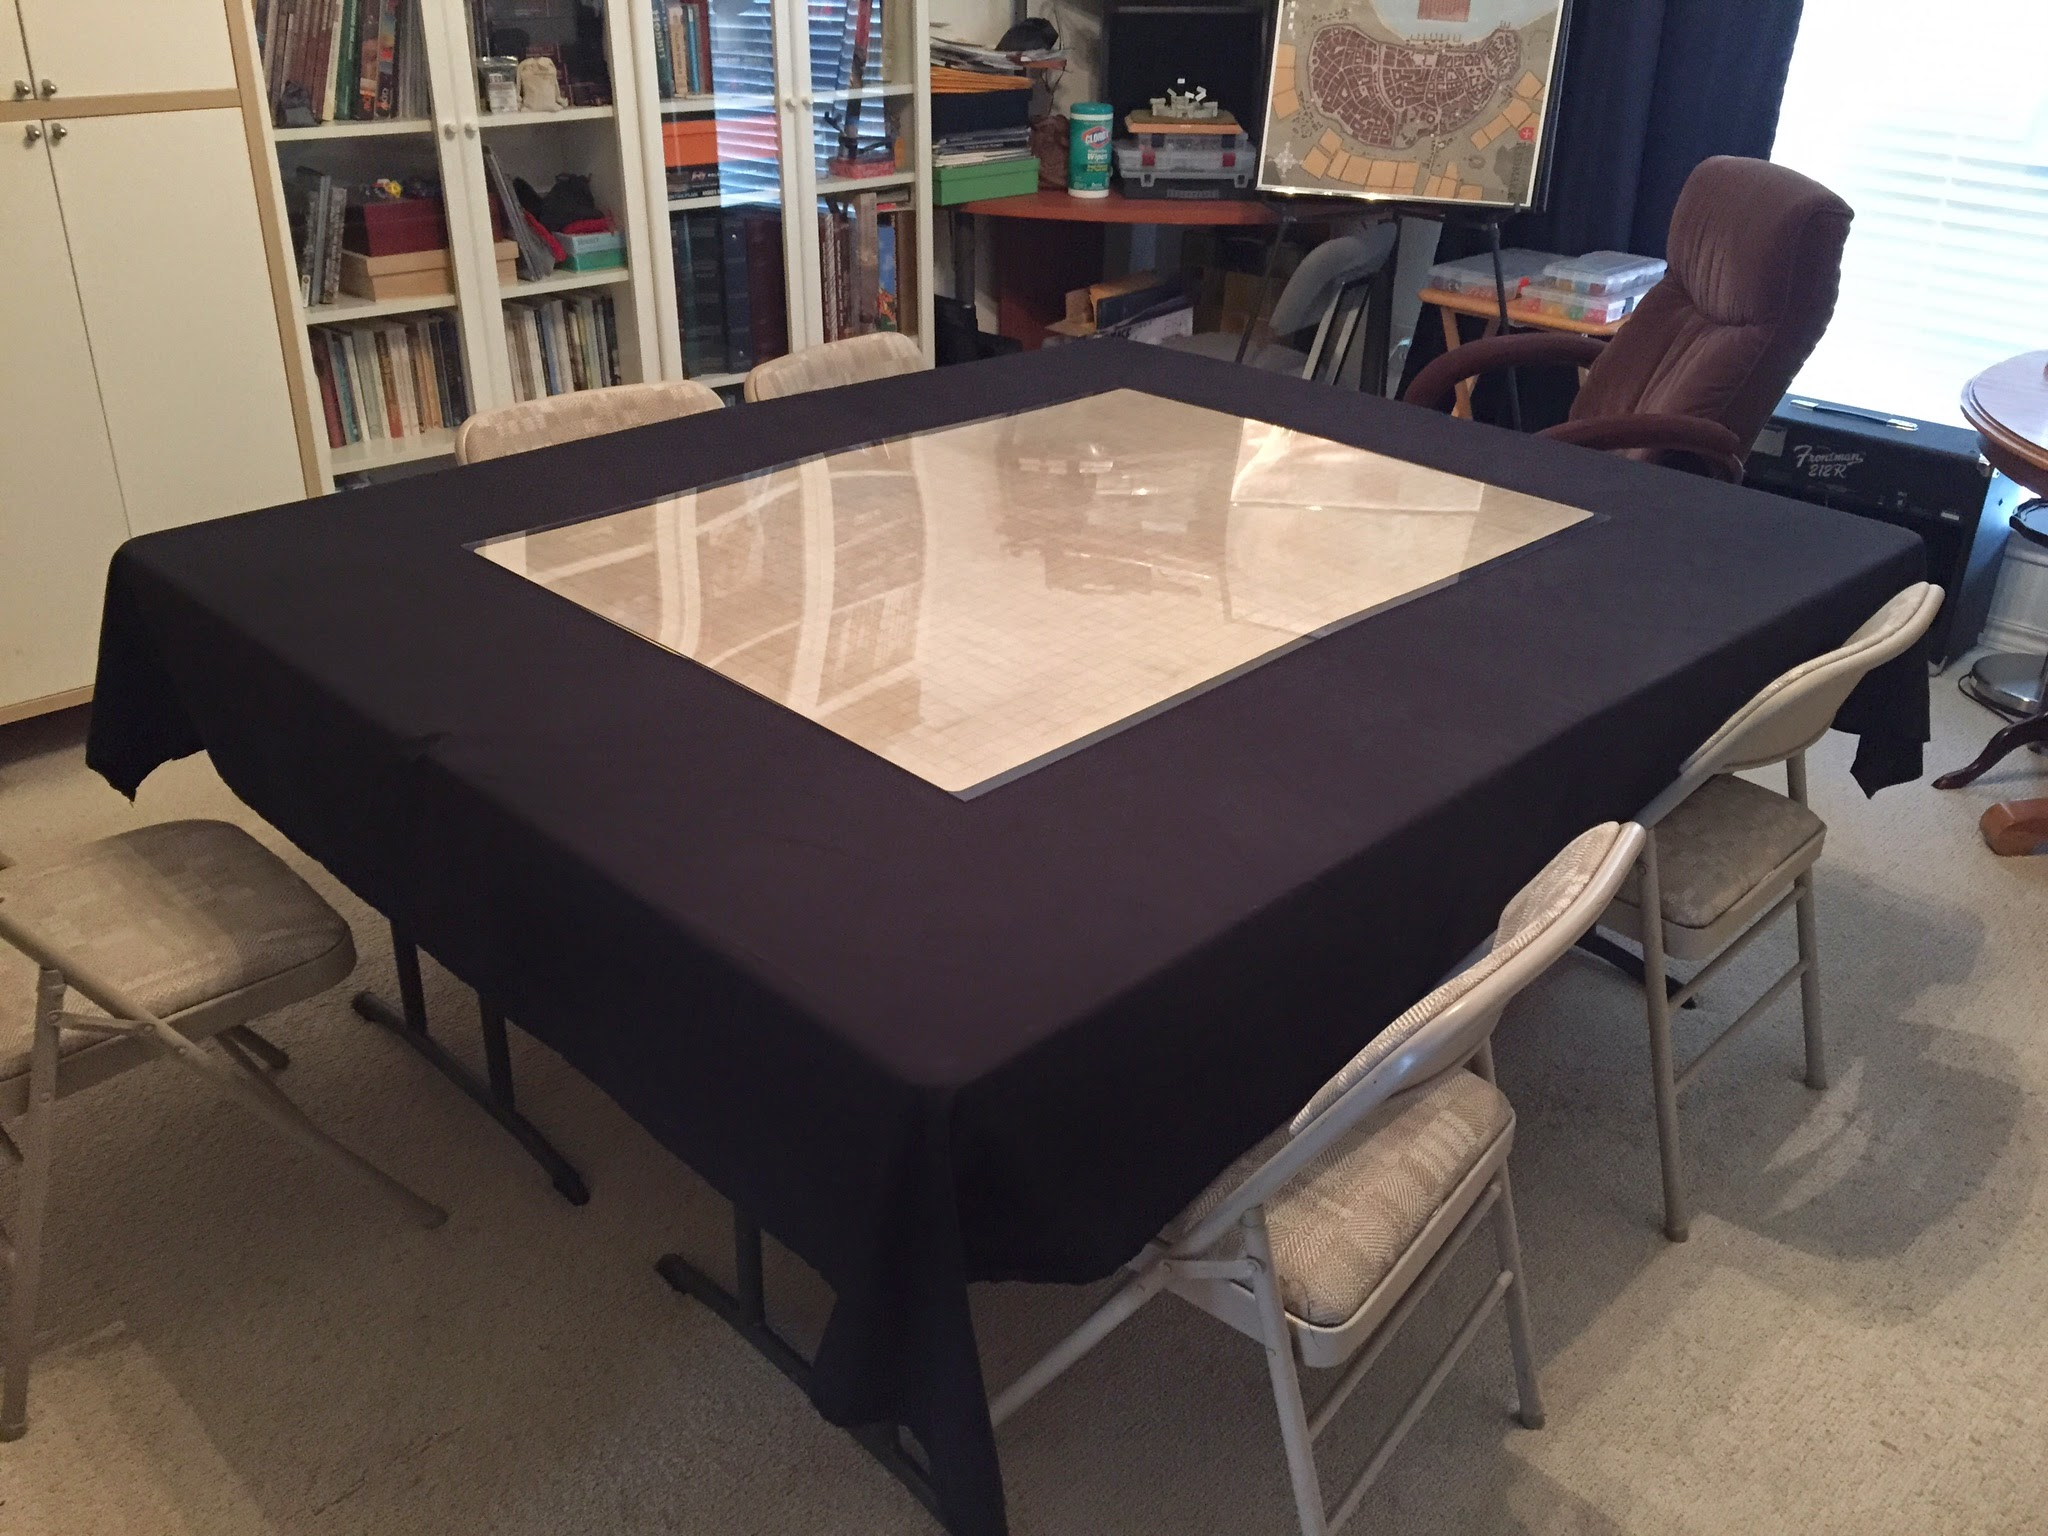 Creating a Stowable Gaming Table